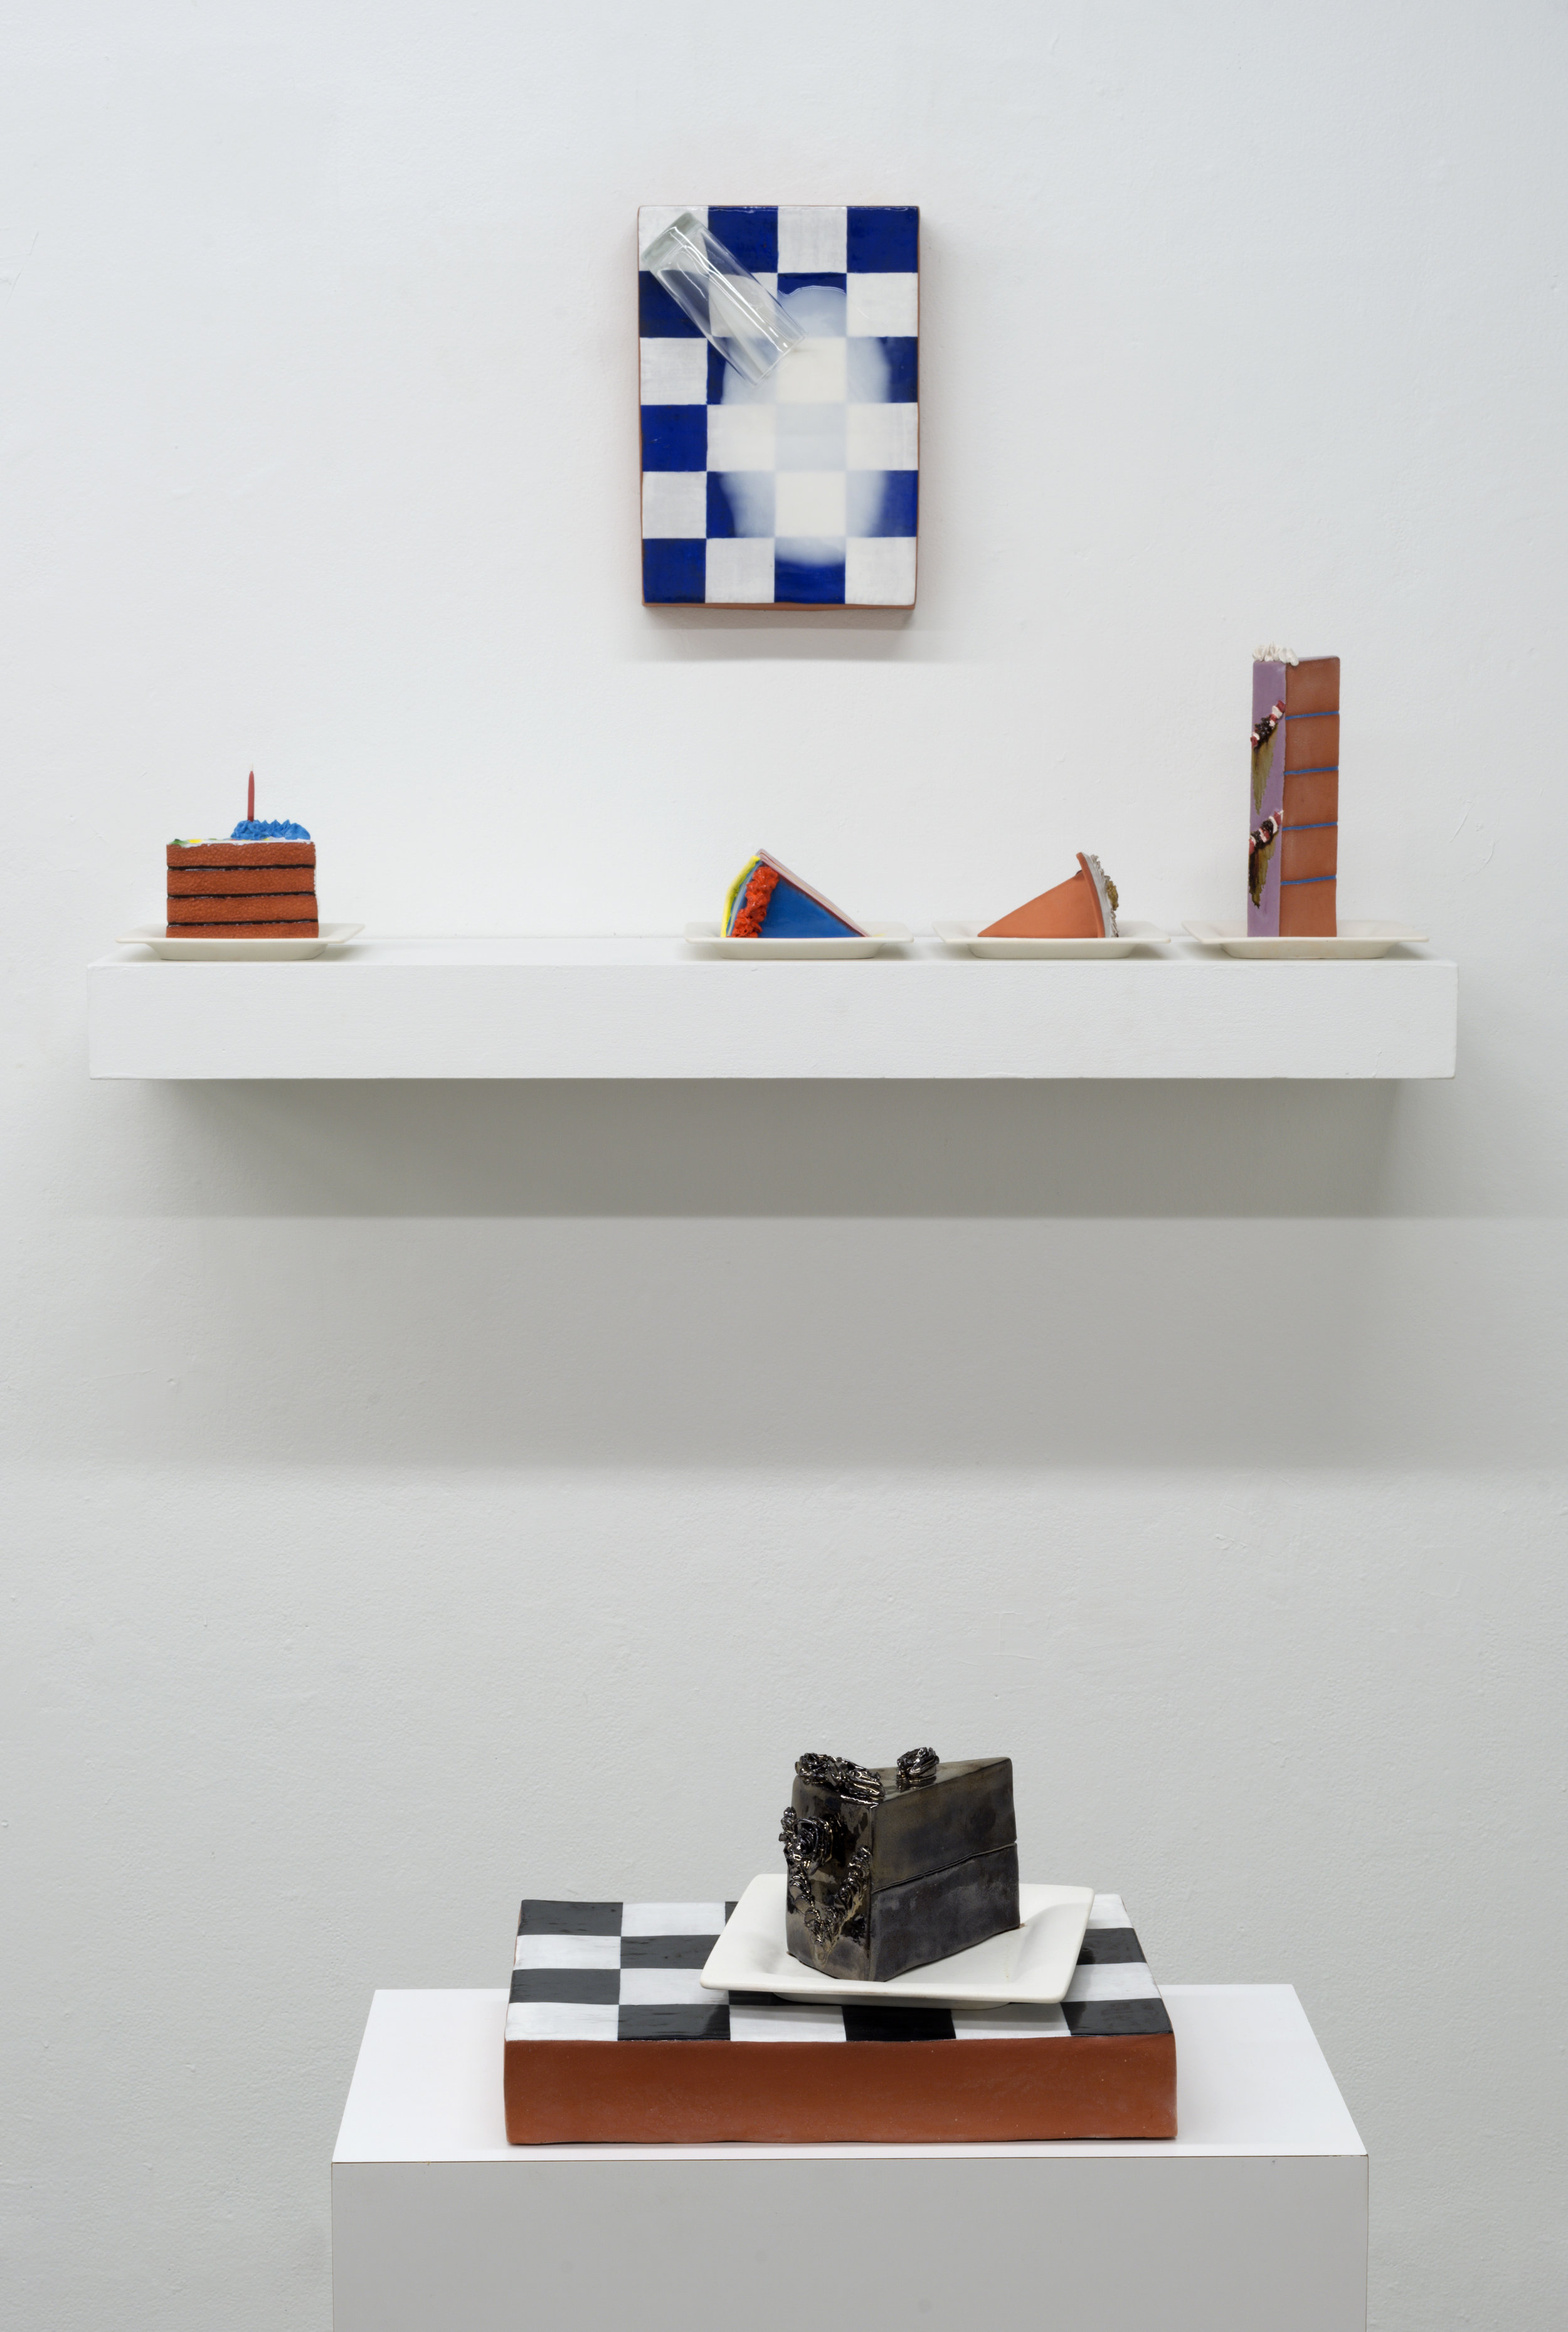 Mantel, Spilt Milk (installation view)